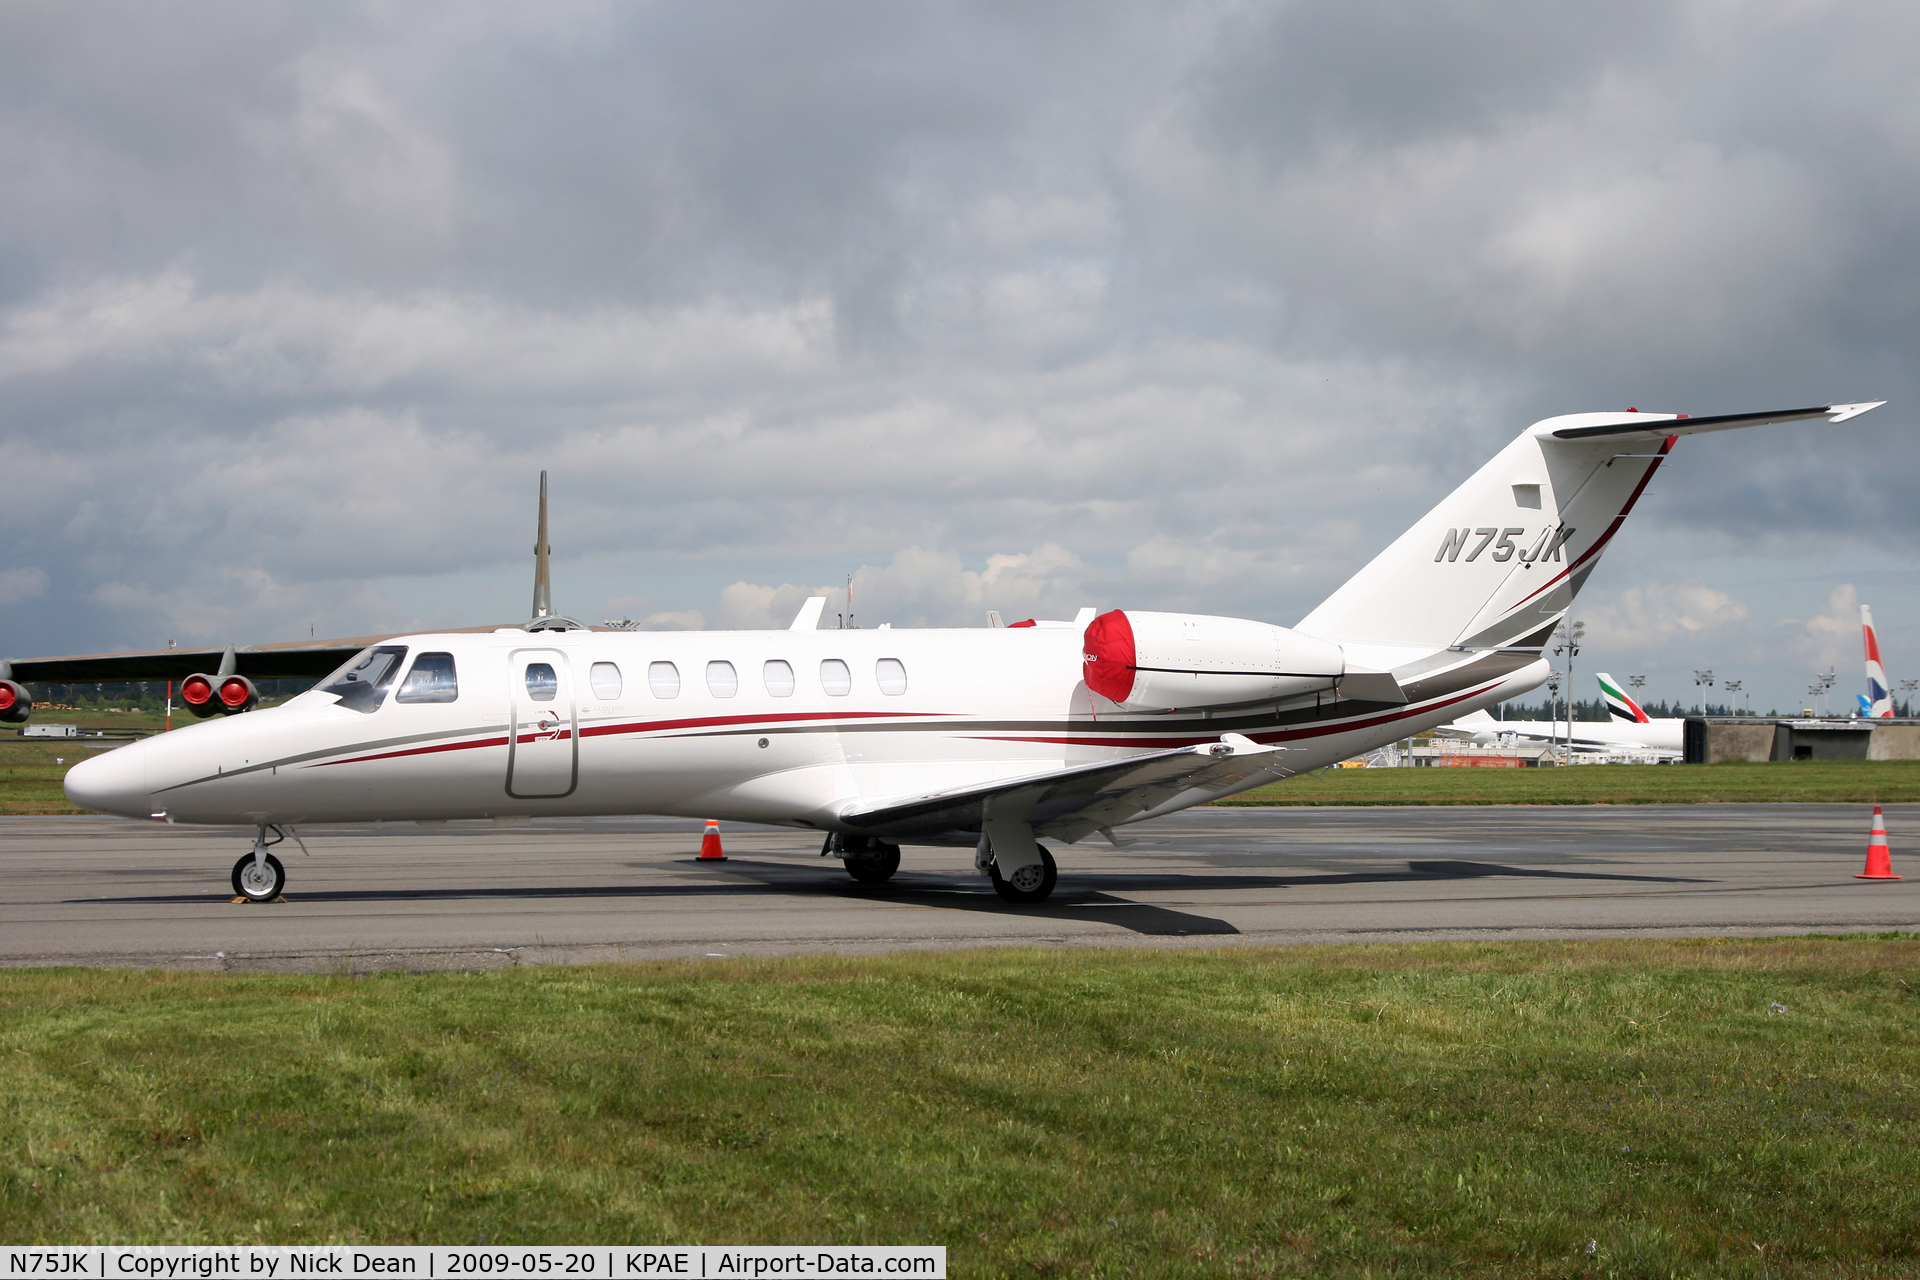 N75JK, 2008 Cessna 525B CitationJet CJ3 C/N 525B-0240, KPAE